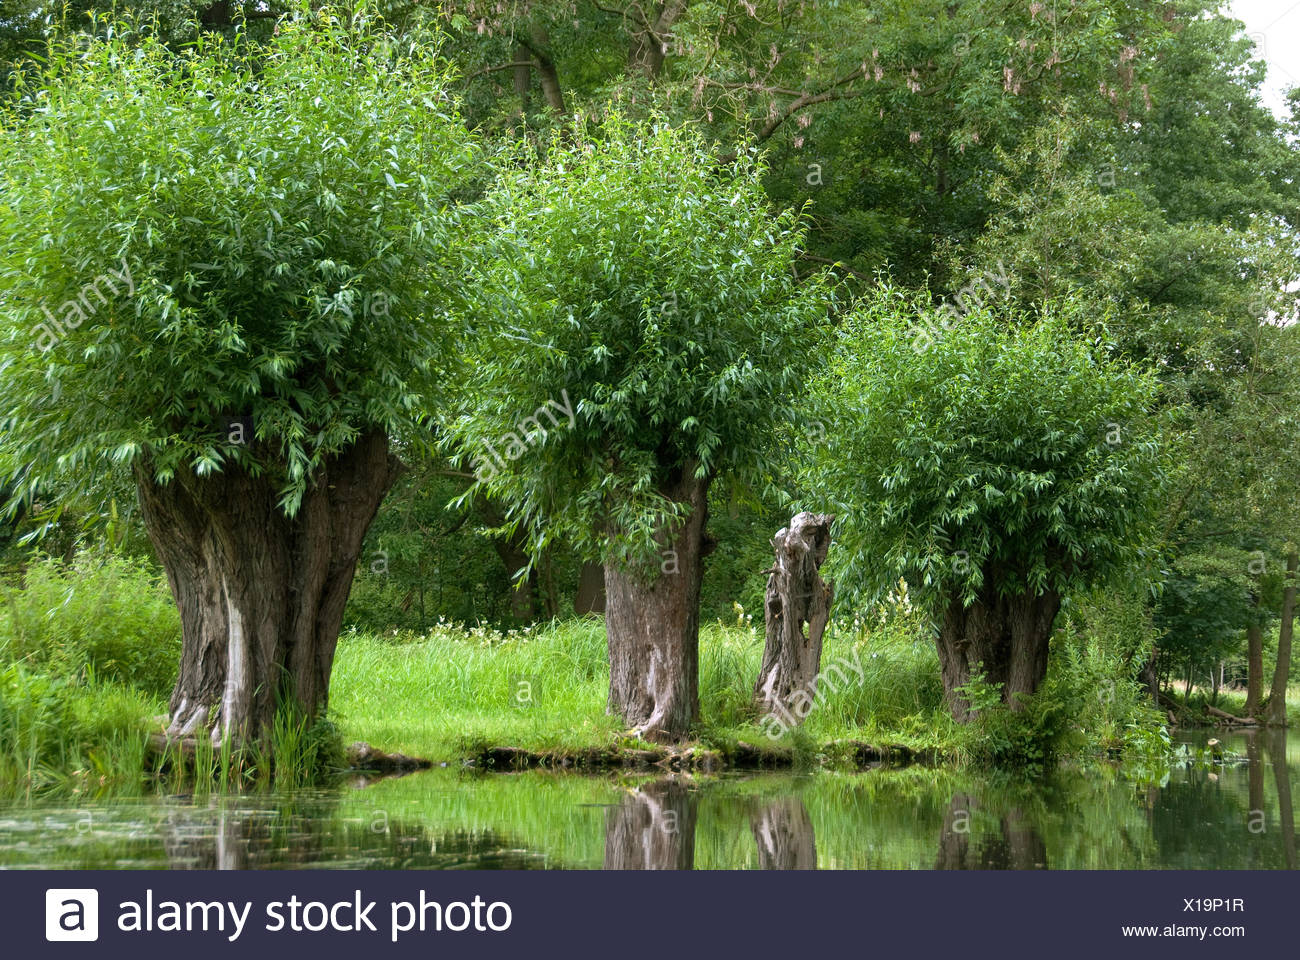 White willow (Salix alba), pollarded willows in Spreewald, Germany, Berlin - Stock Image